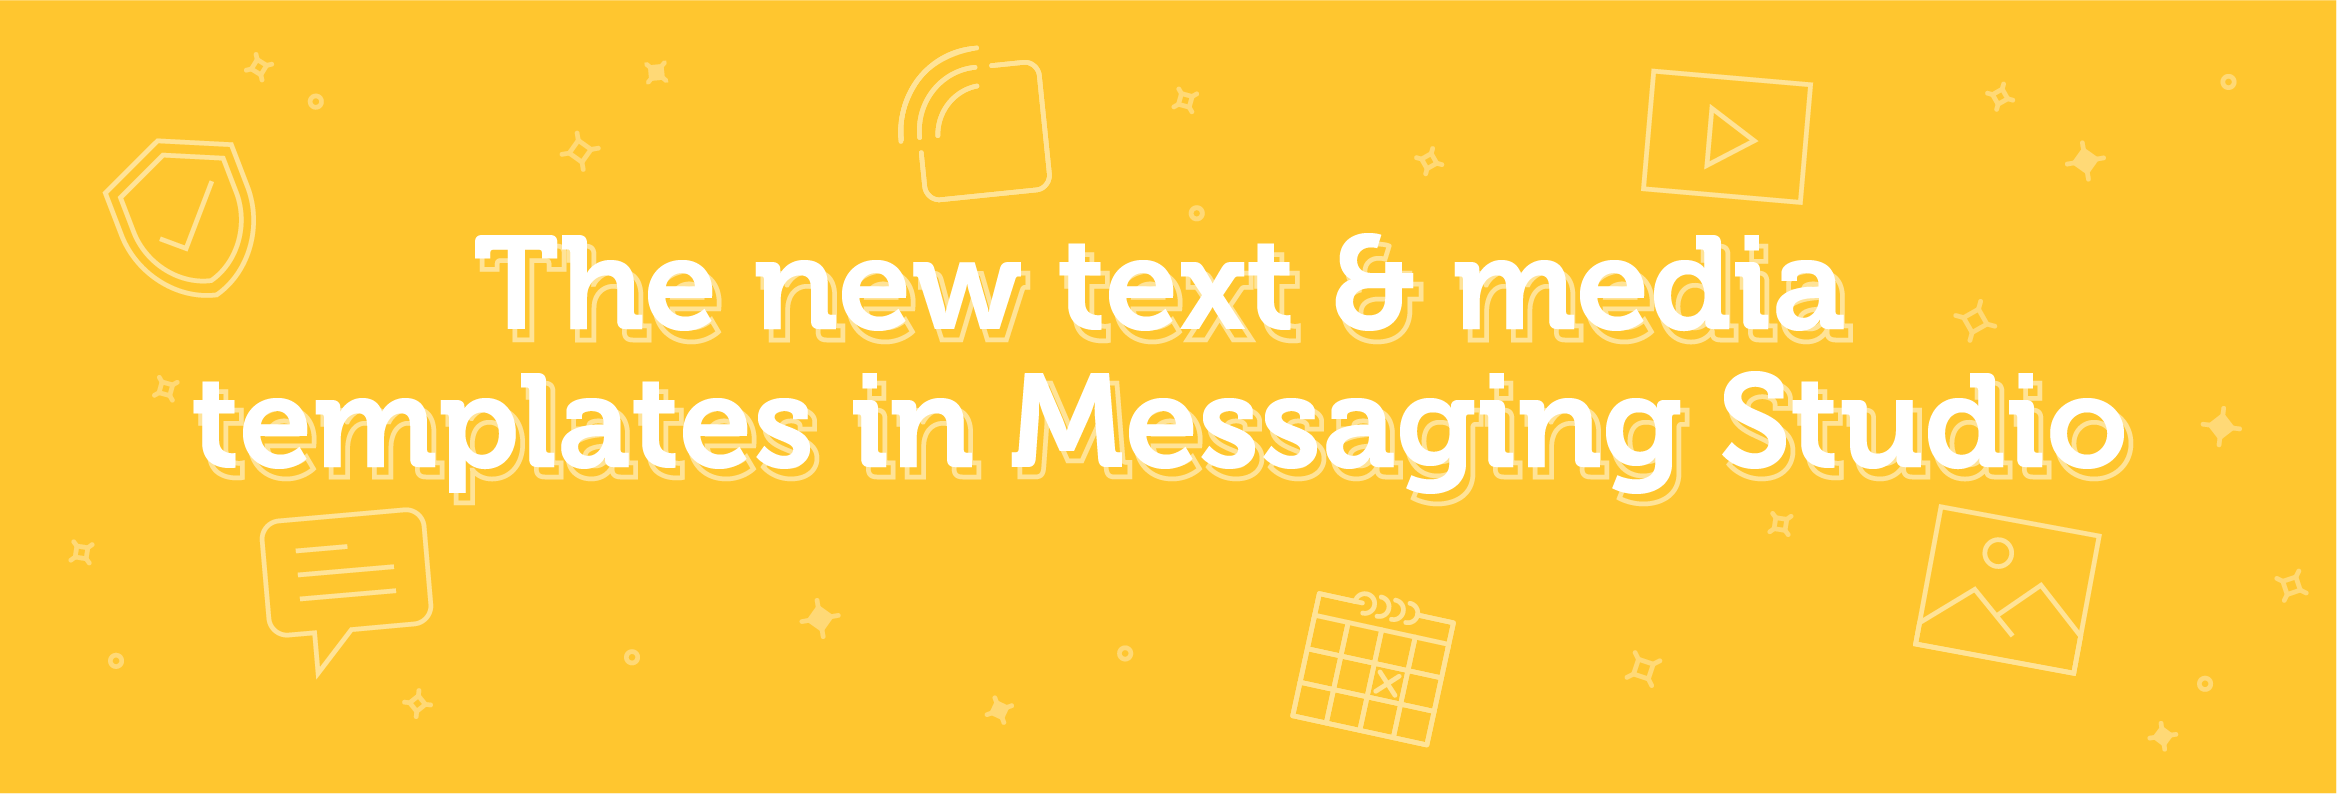 The new text and media templates in Messaging Studio